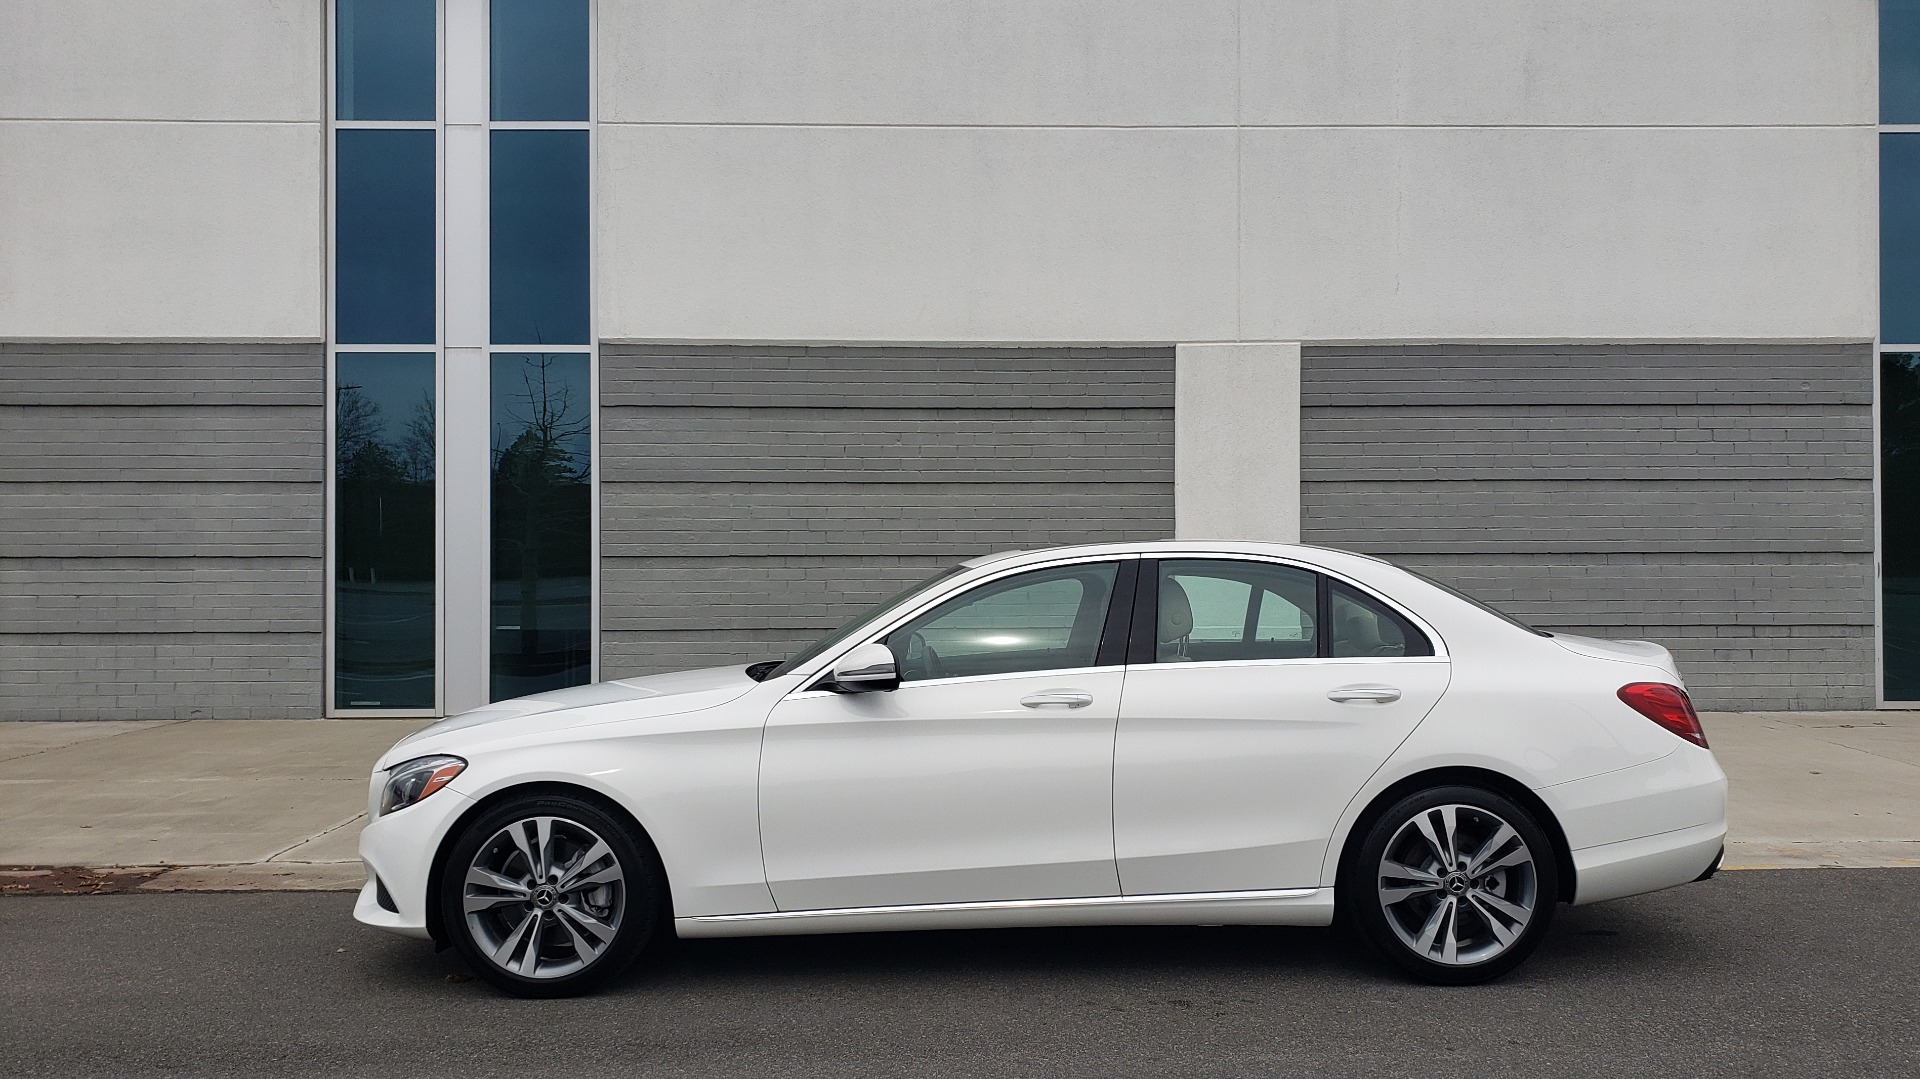 Used 2018 Mercedes-Benz C-CLASS C 300 PREMIUM / NAV / HTD STS / APPLY CARPLAY / REARVIEW for sale $26,695 at Formula Imports in Charlotte NC 28227 2